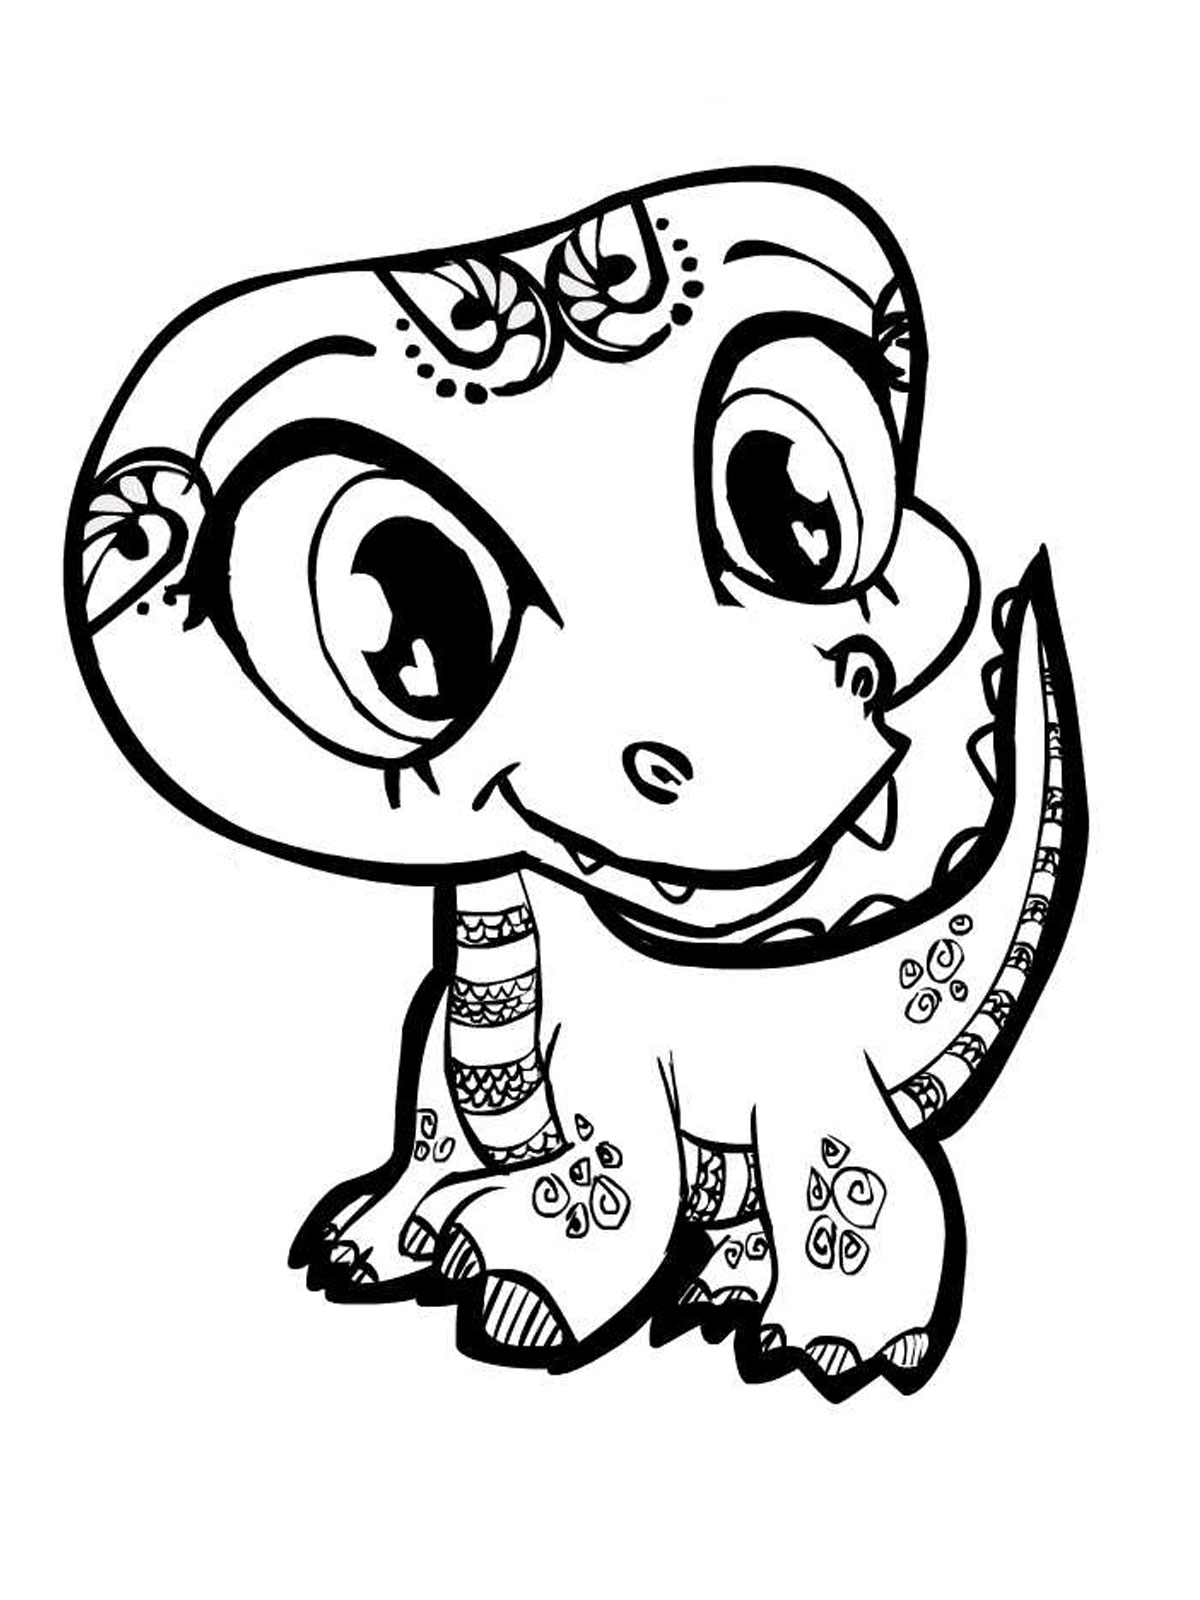 Cute Smiling Alligator Kids Coloring Pages